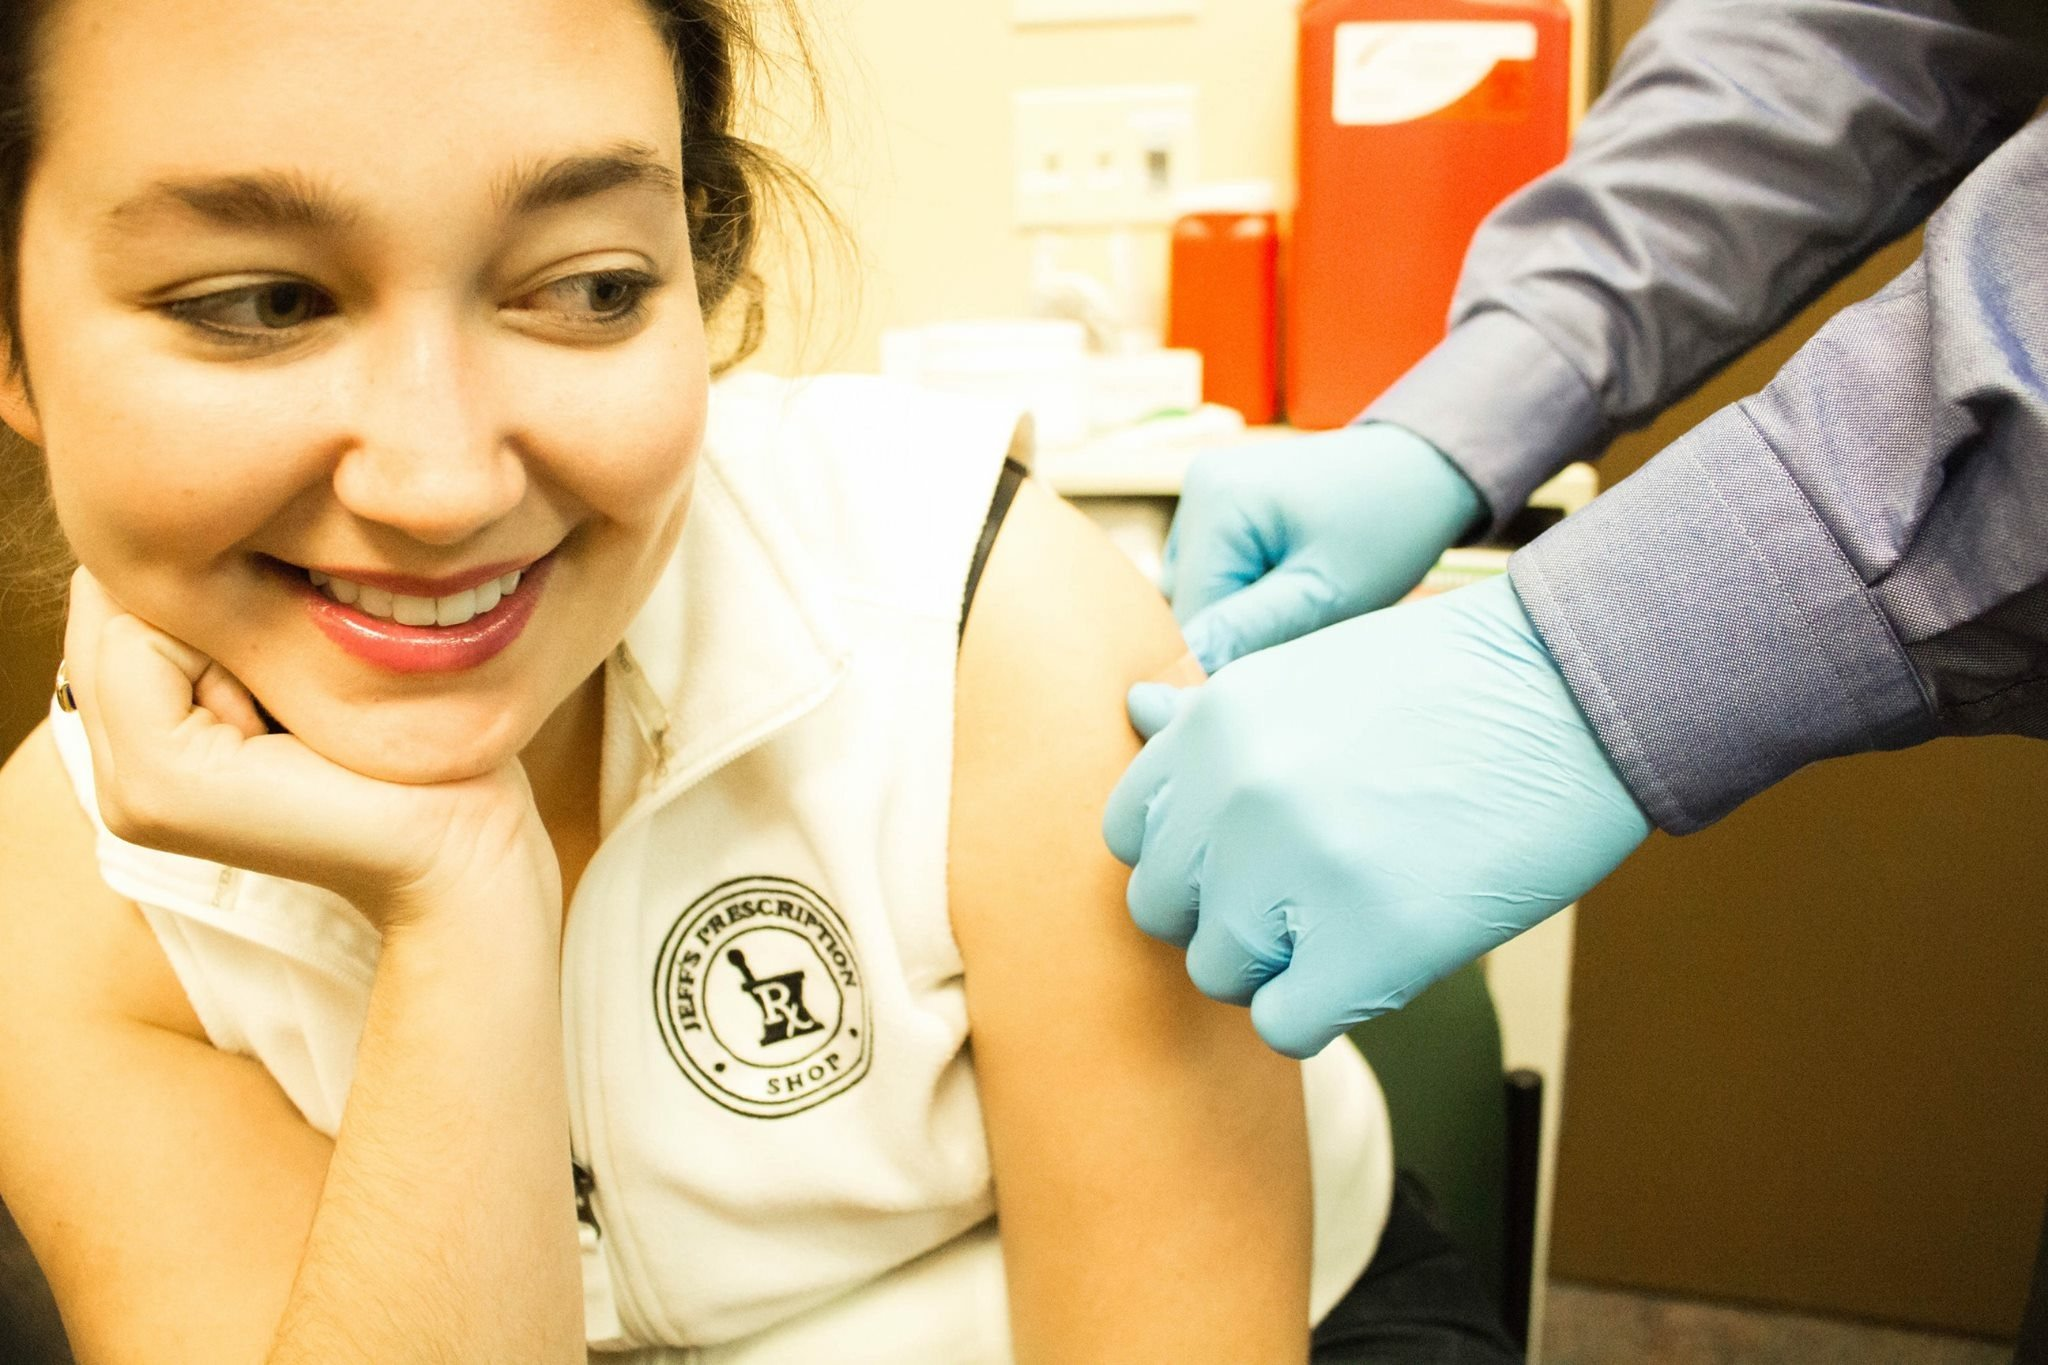 A girl getting flu shots in Elizabethtown, KY